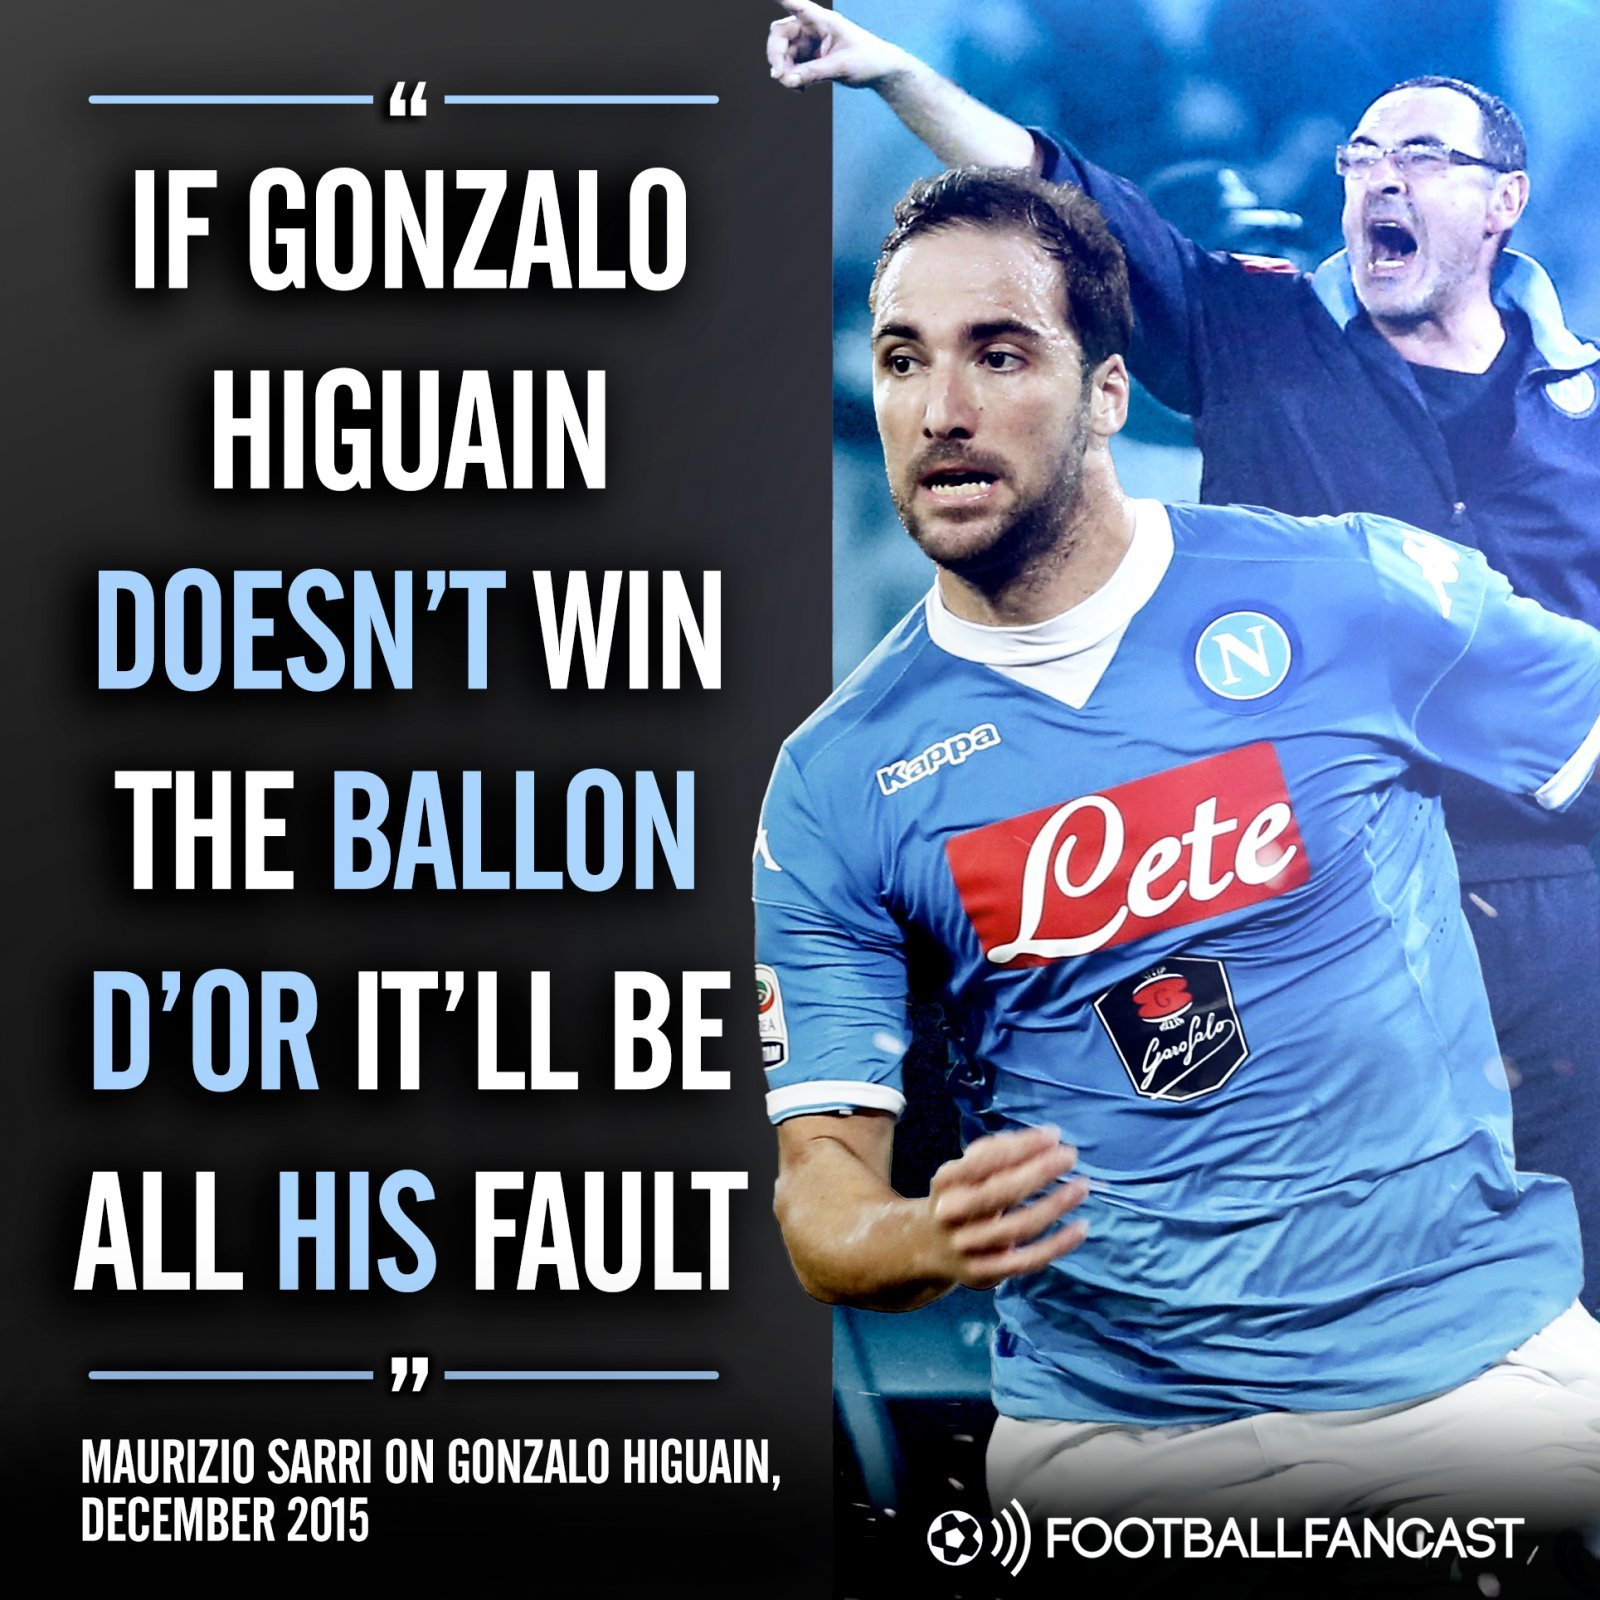 Maurizio Sarri's quotes on Gonzalo Higuain and the Ballon d'Or